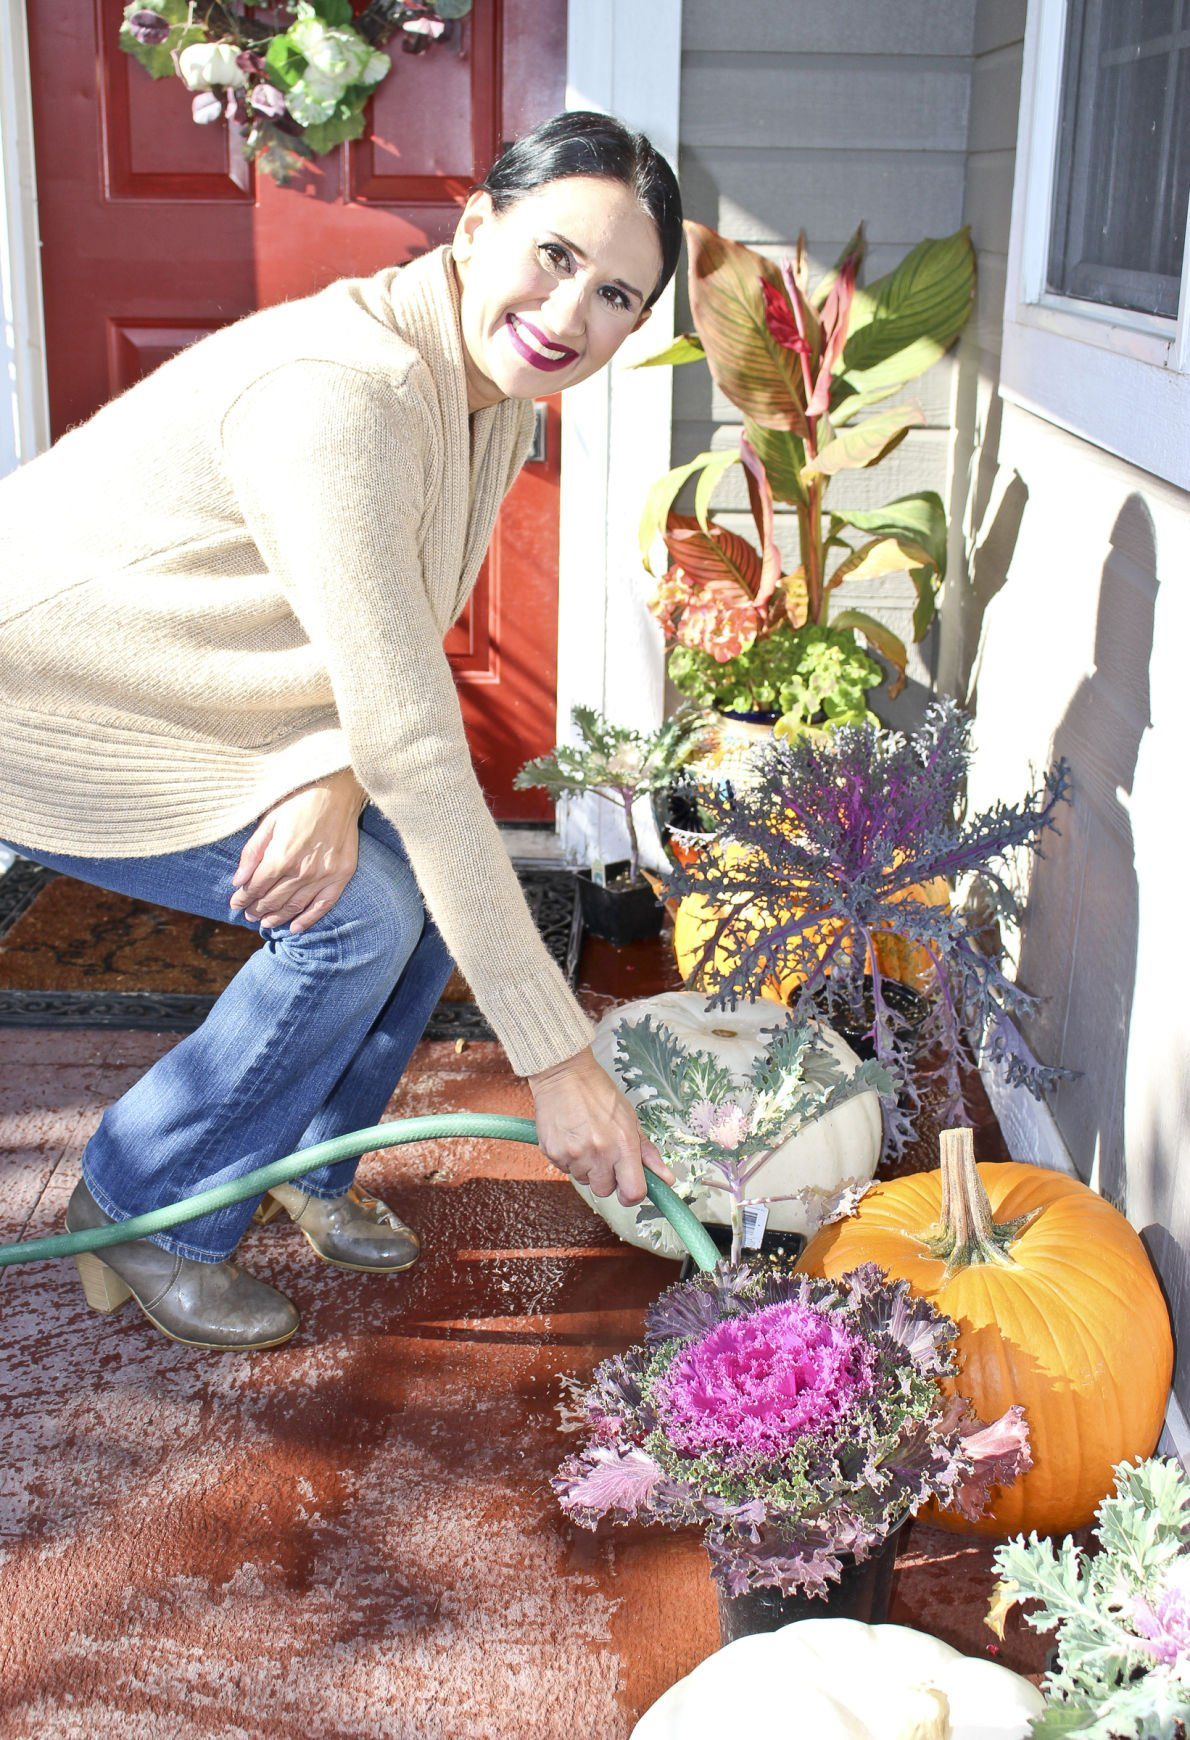 Curb appeal: Porches welcome families home